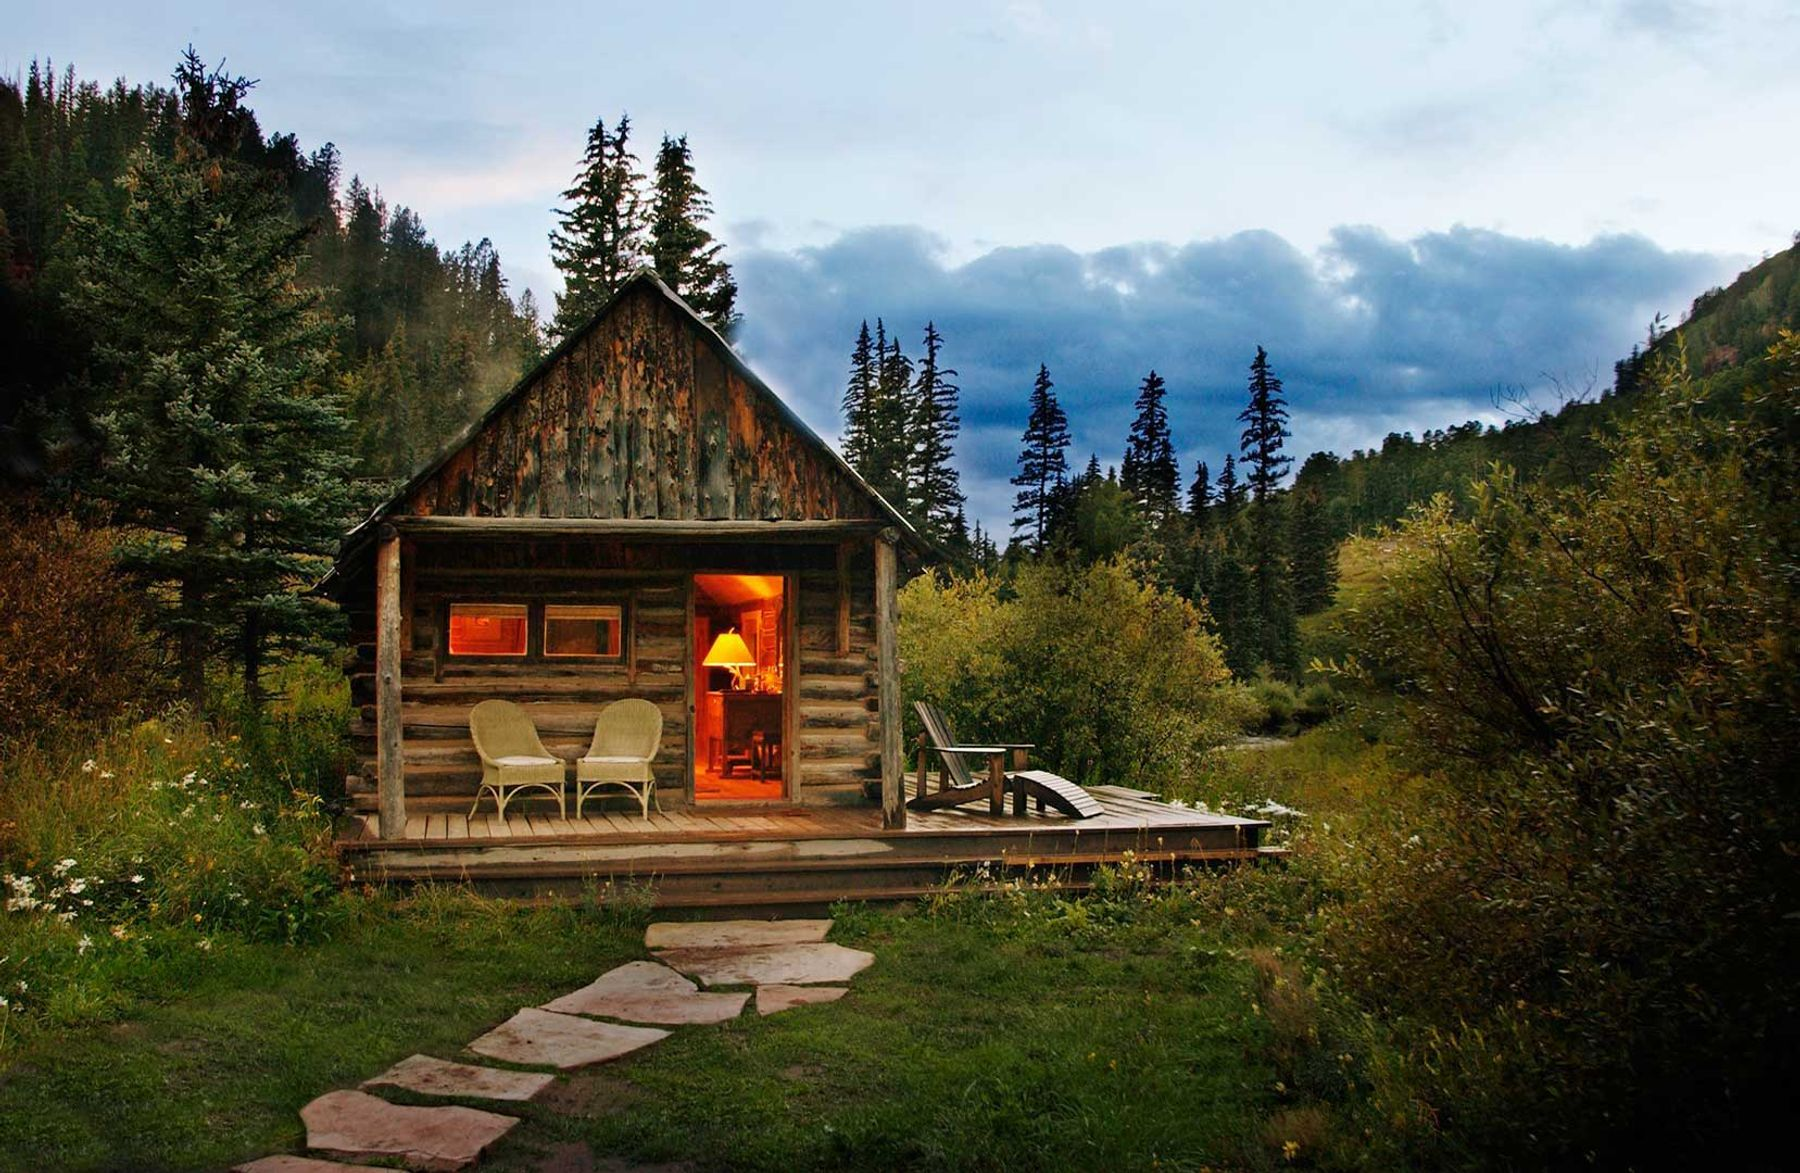 a small cozy cabin surrounded by the forest